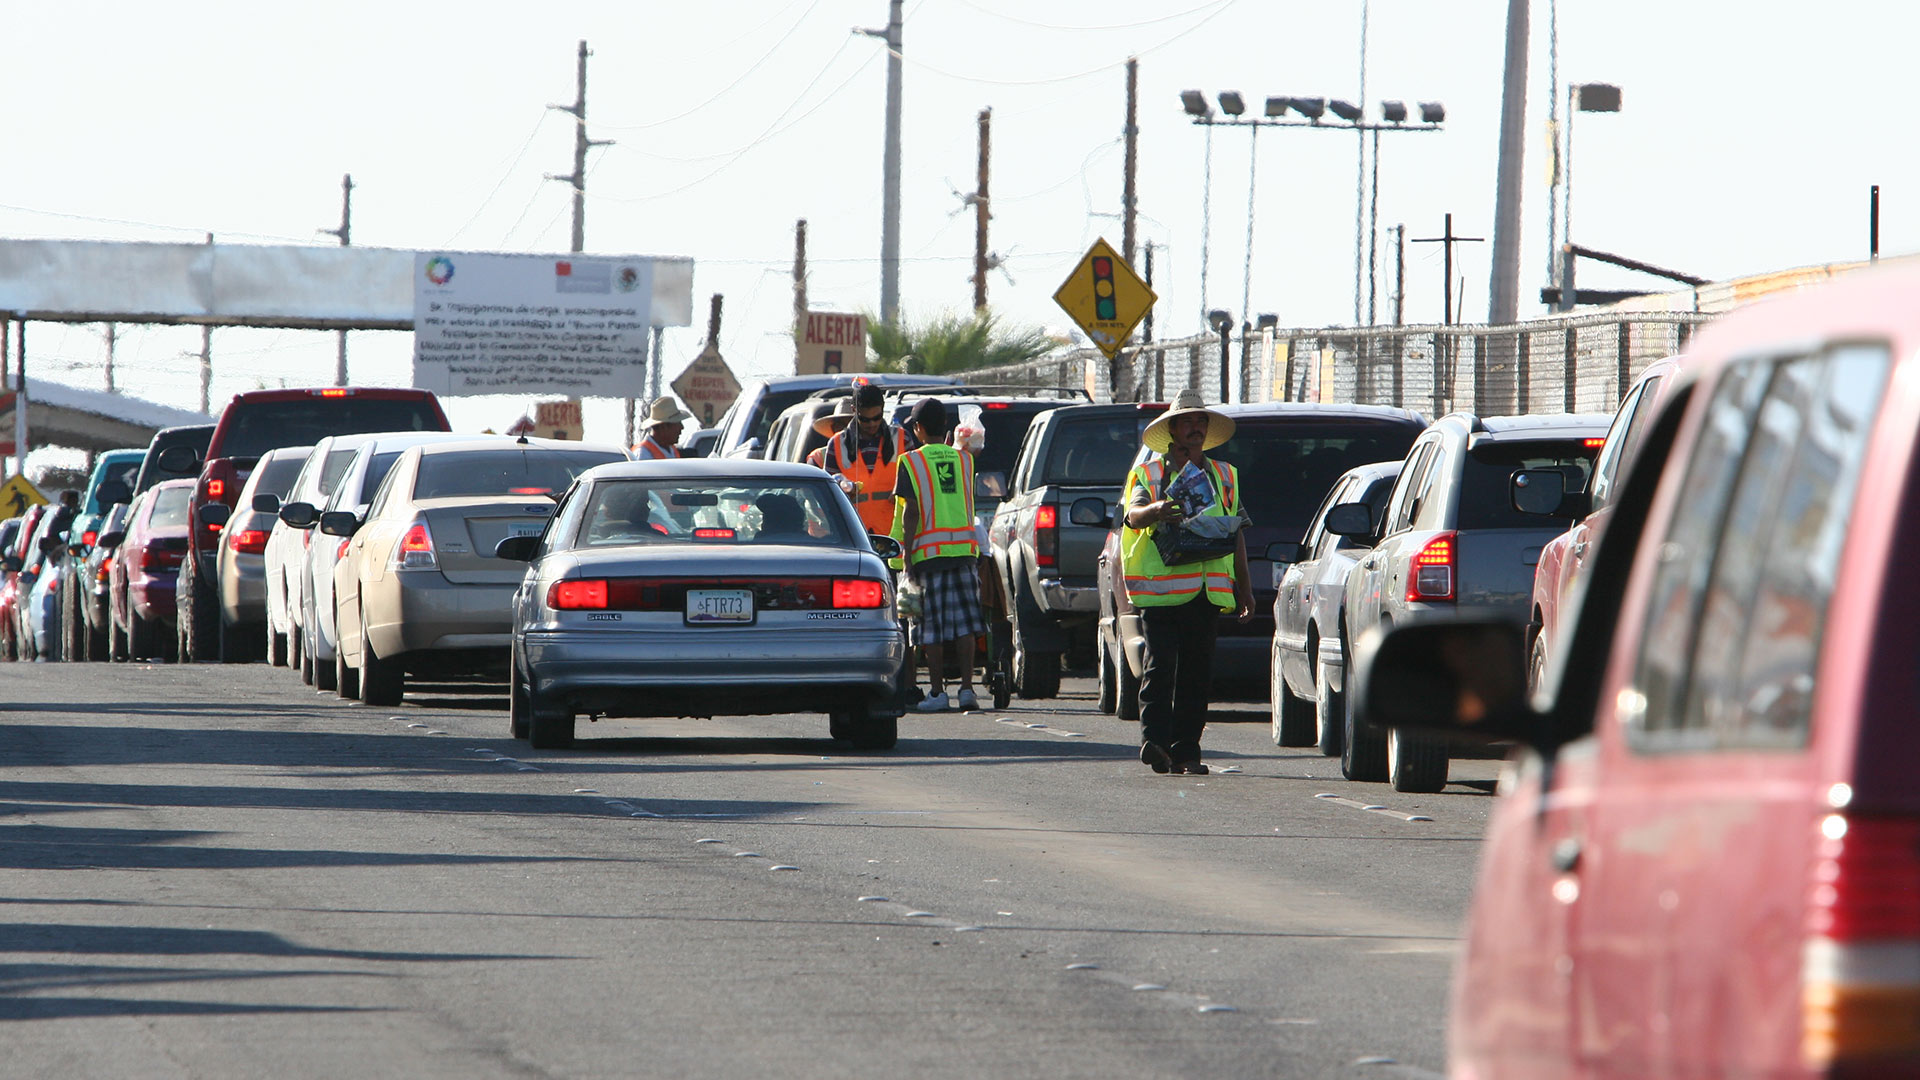 Afternoon traffic heading into the U.S. builds up at the San Luis Port of Entry in San Luis Río Colorado, Sonora, 2011.